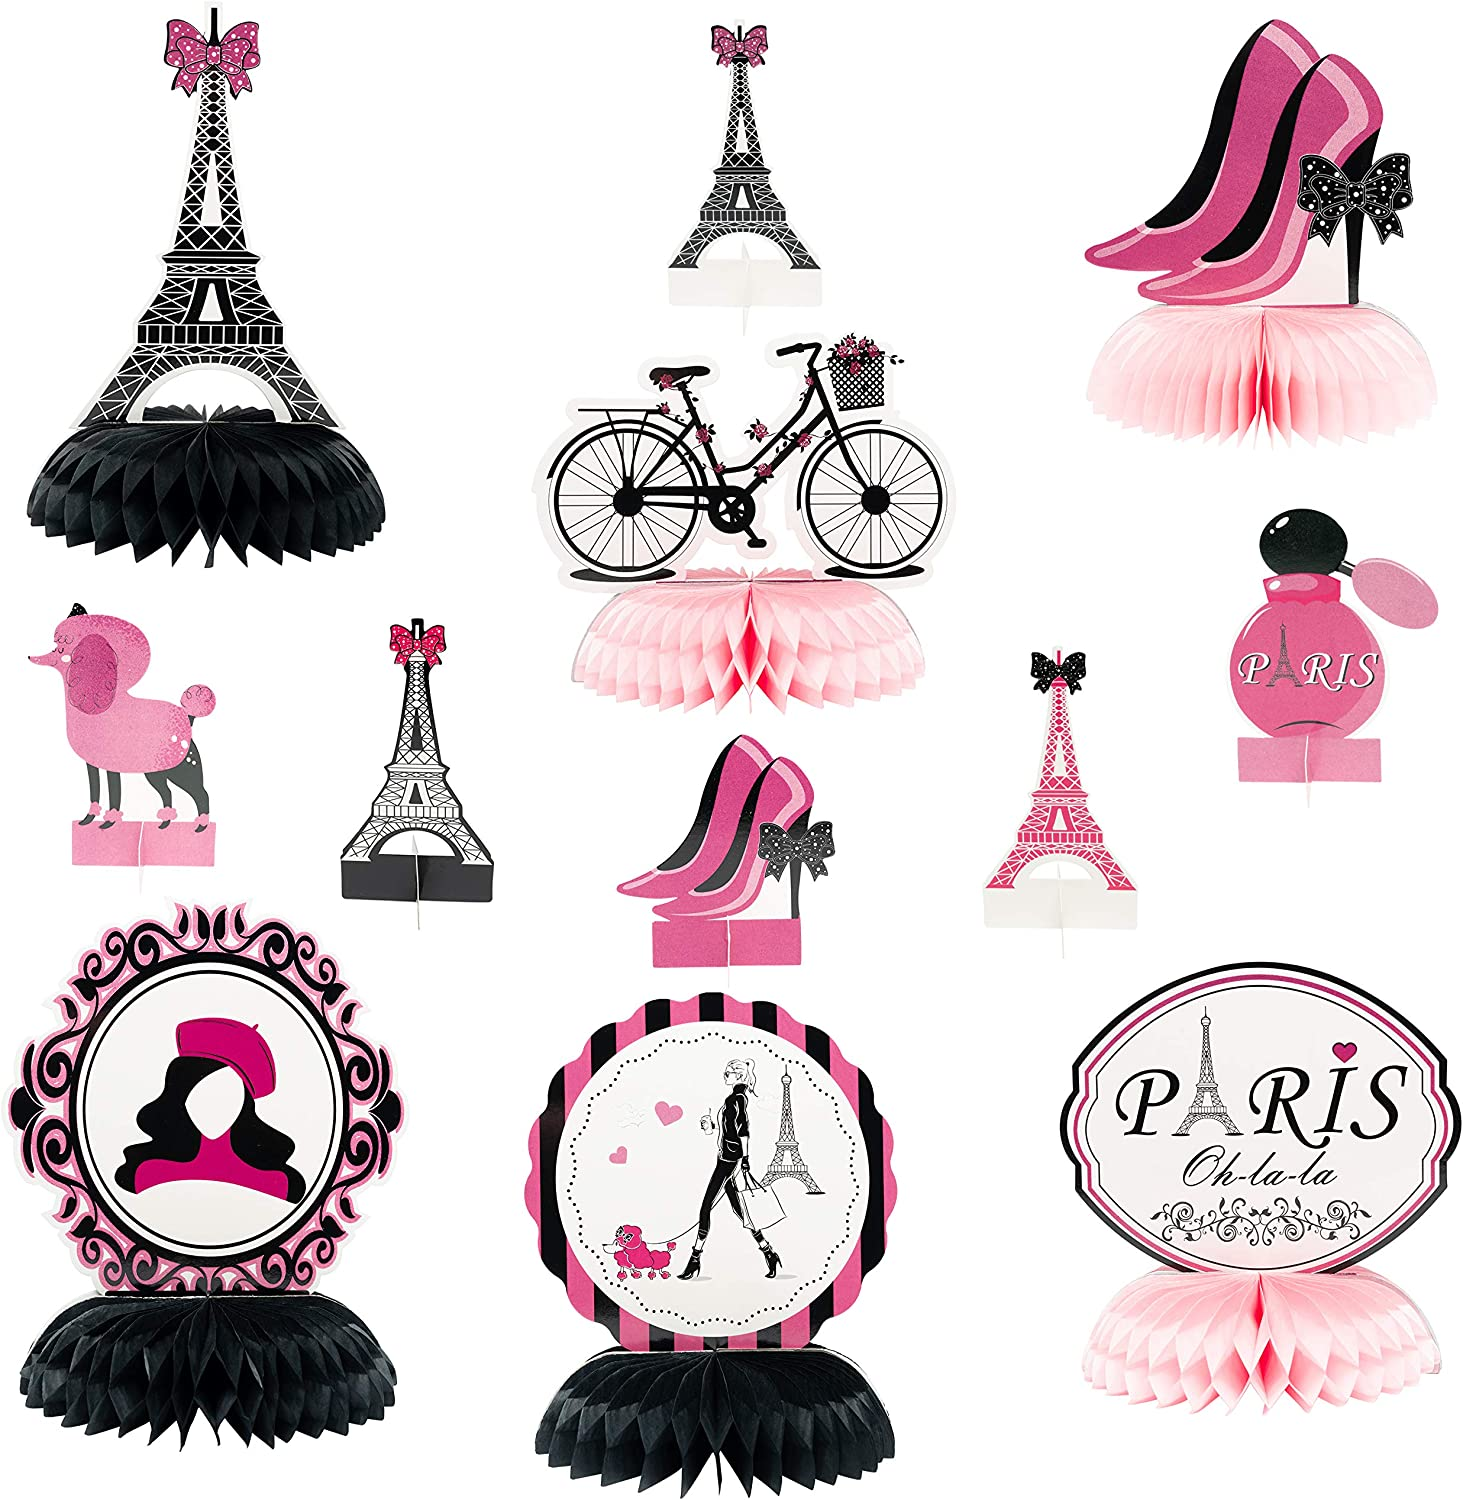 MALLMALL6 12Pcs Paris Honeycombs Centerpieces Party in Paris Party Supplies Birthday Baby Shower Decorations Girls Dream Paris Themed Photo Booth Romantic Eiffel Tower Pink Table Topper for Home